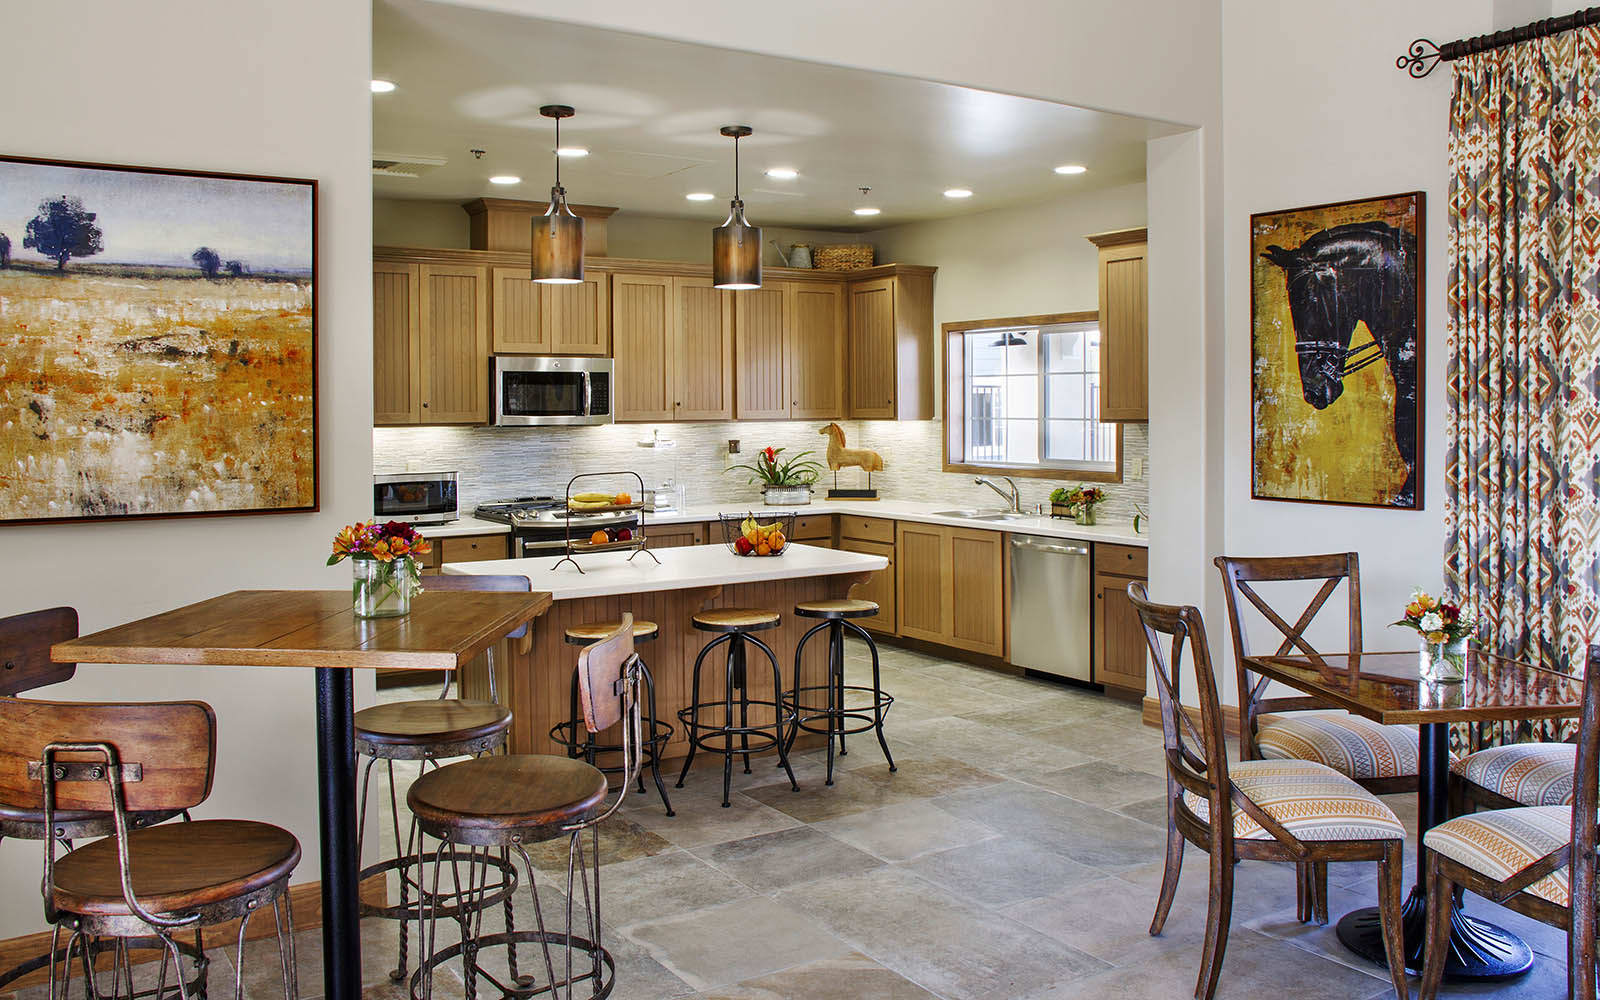 Open Kitchen Area at Siena Apartments in Santa Maria, CA